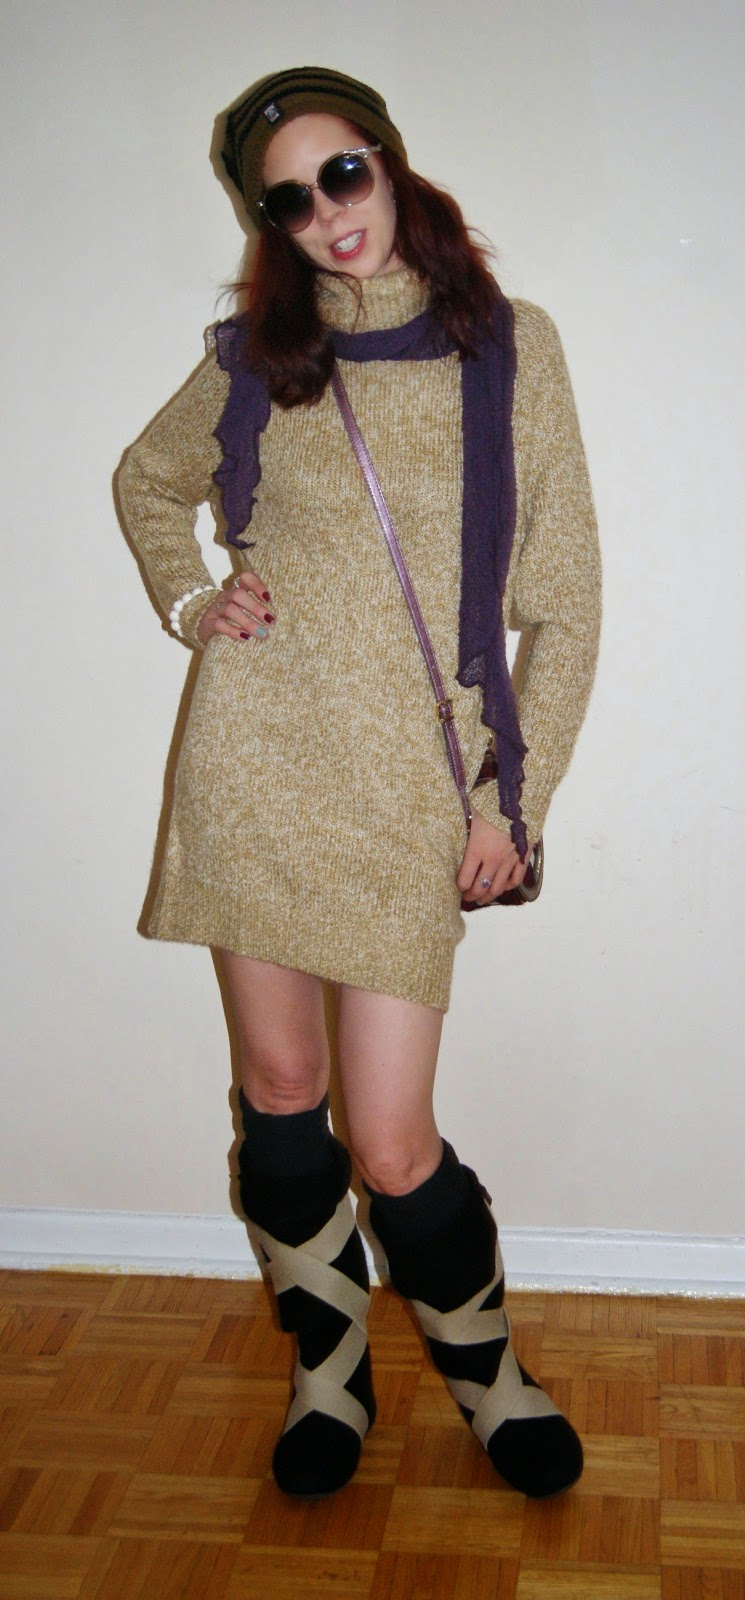 My Style!: Warm + Chic: H+M Sweater Dress, Lahtiset ryppy wool felt boots, Aarika Pohjola Wooden Bracelet from Uniiki, Guess Purse, Purple Scarf, fashion, styletips, shopping, toronto, canada,ontario, outfit, winter, the purple scarf, melanieps, finland, finnish, design, aki choklat,insideout, pug gear, toque